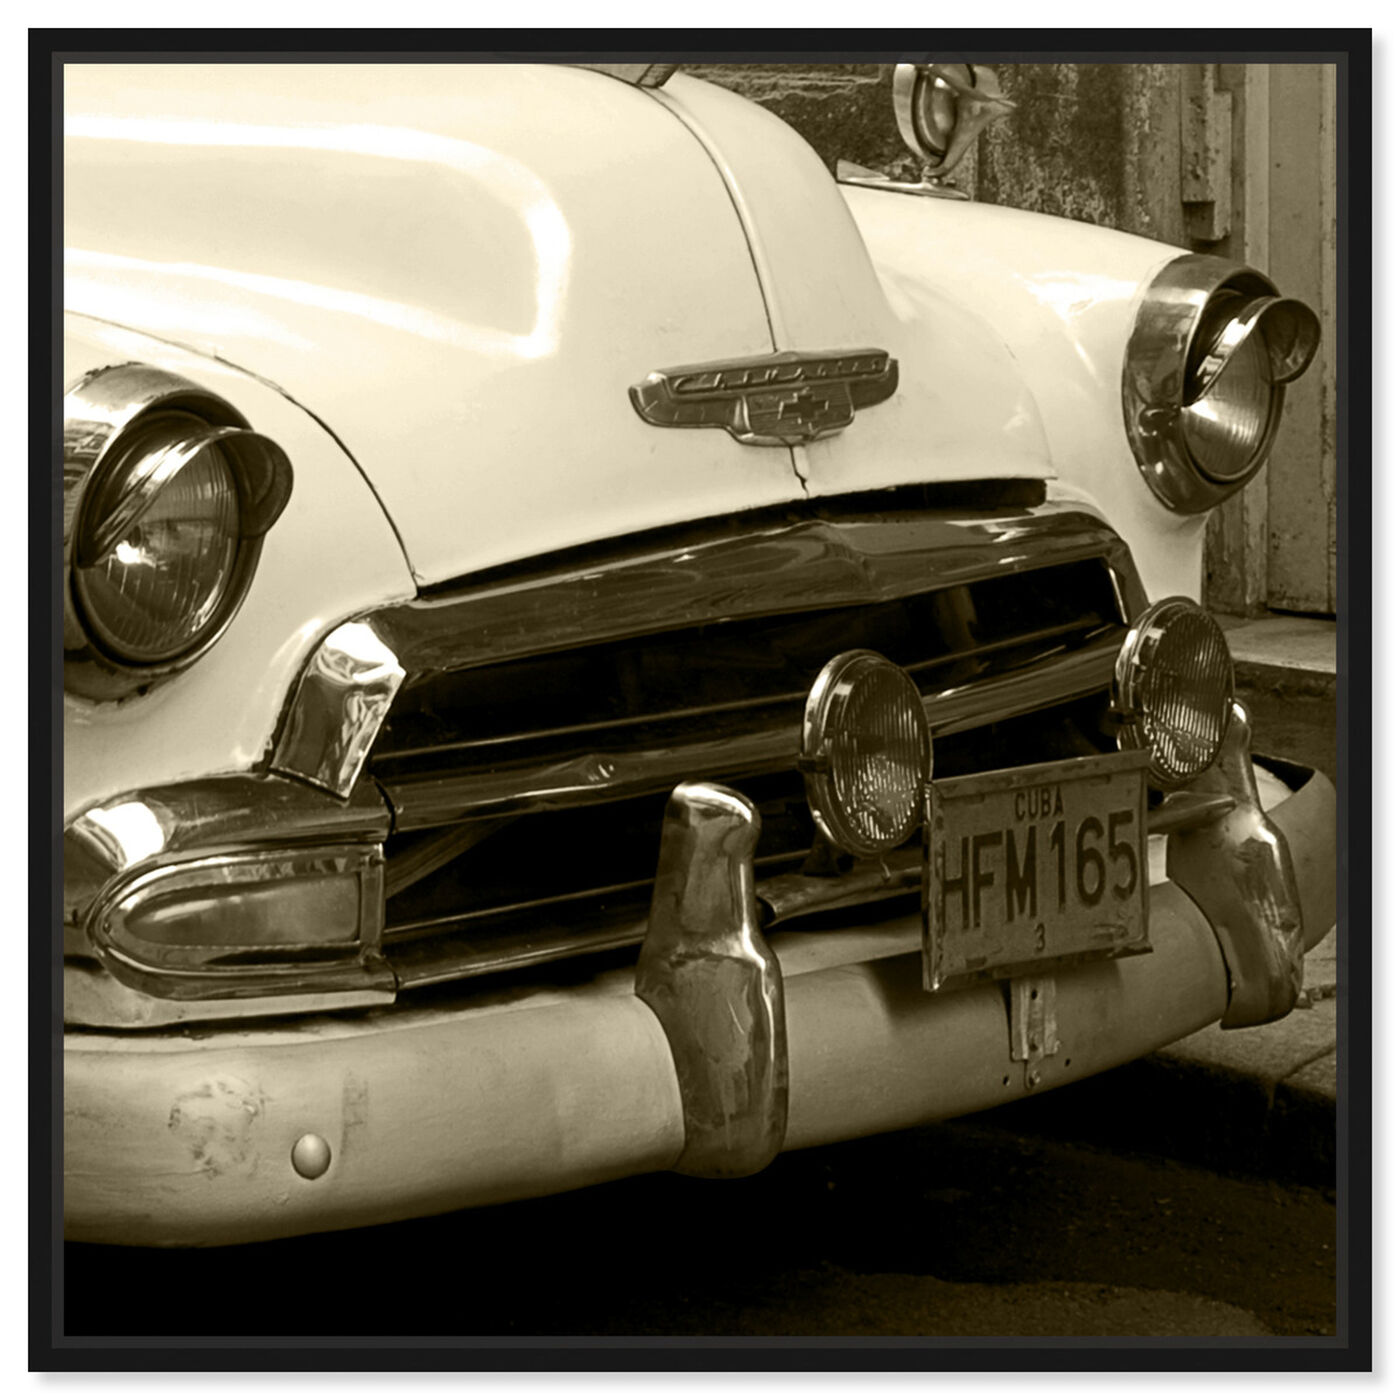 Front view of Vintage Macchina II featuring transportation and automobiles art.